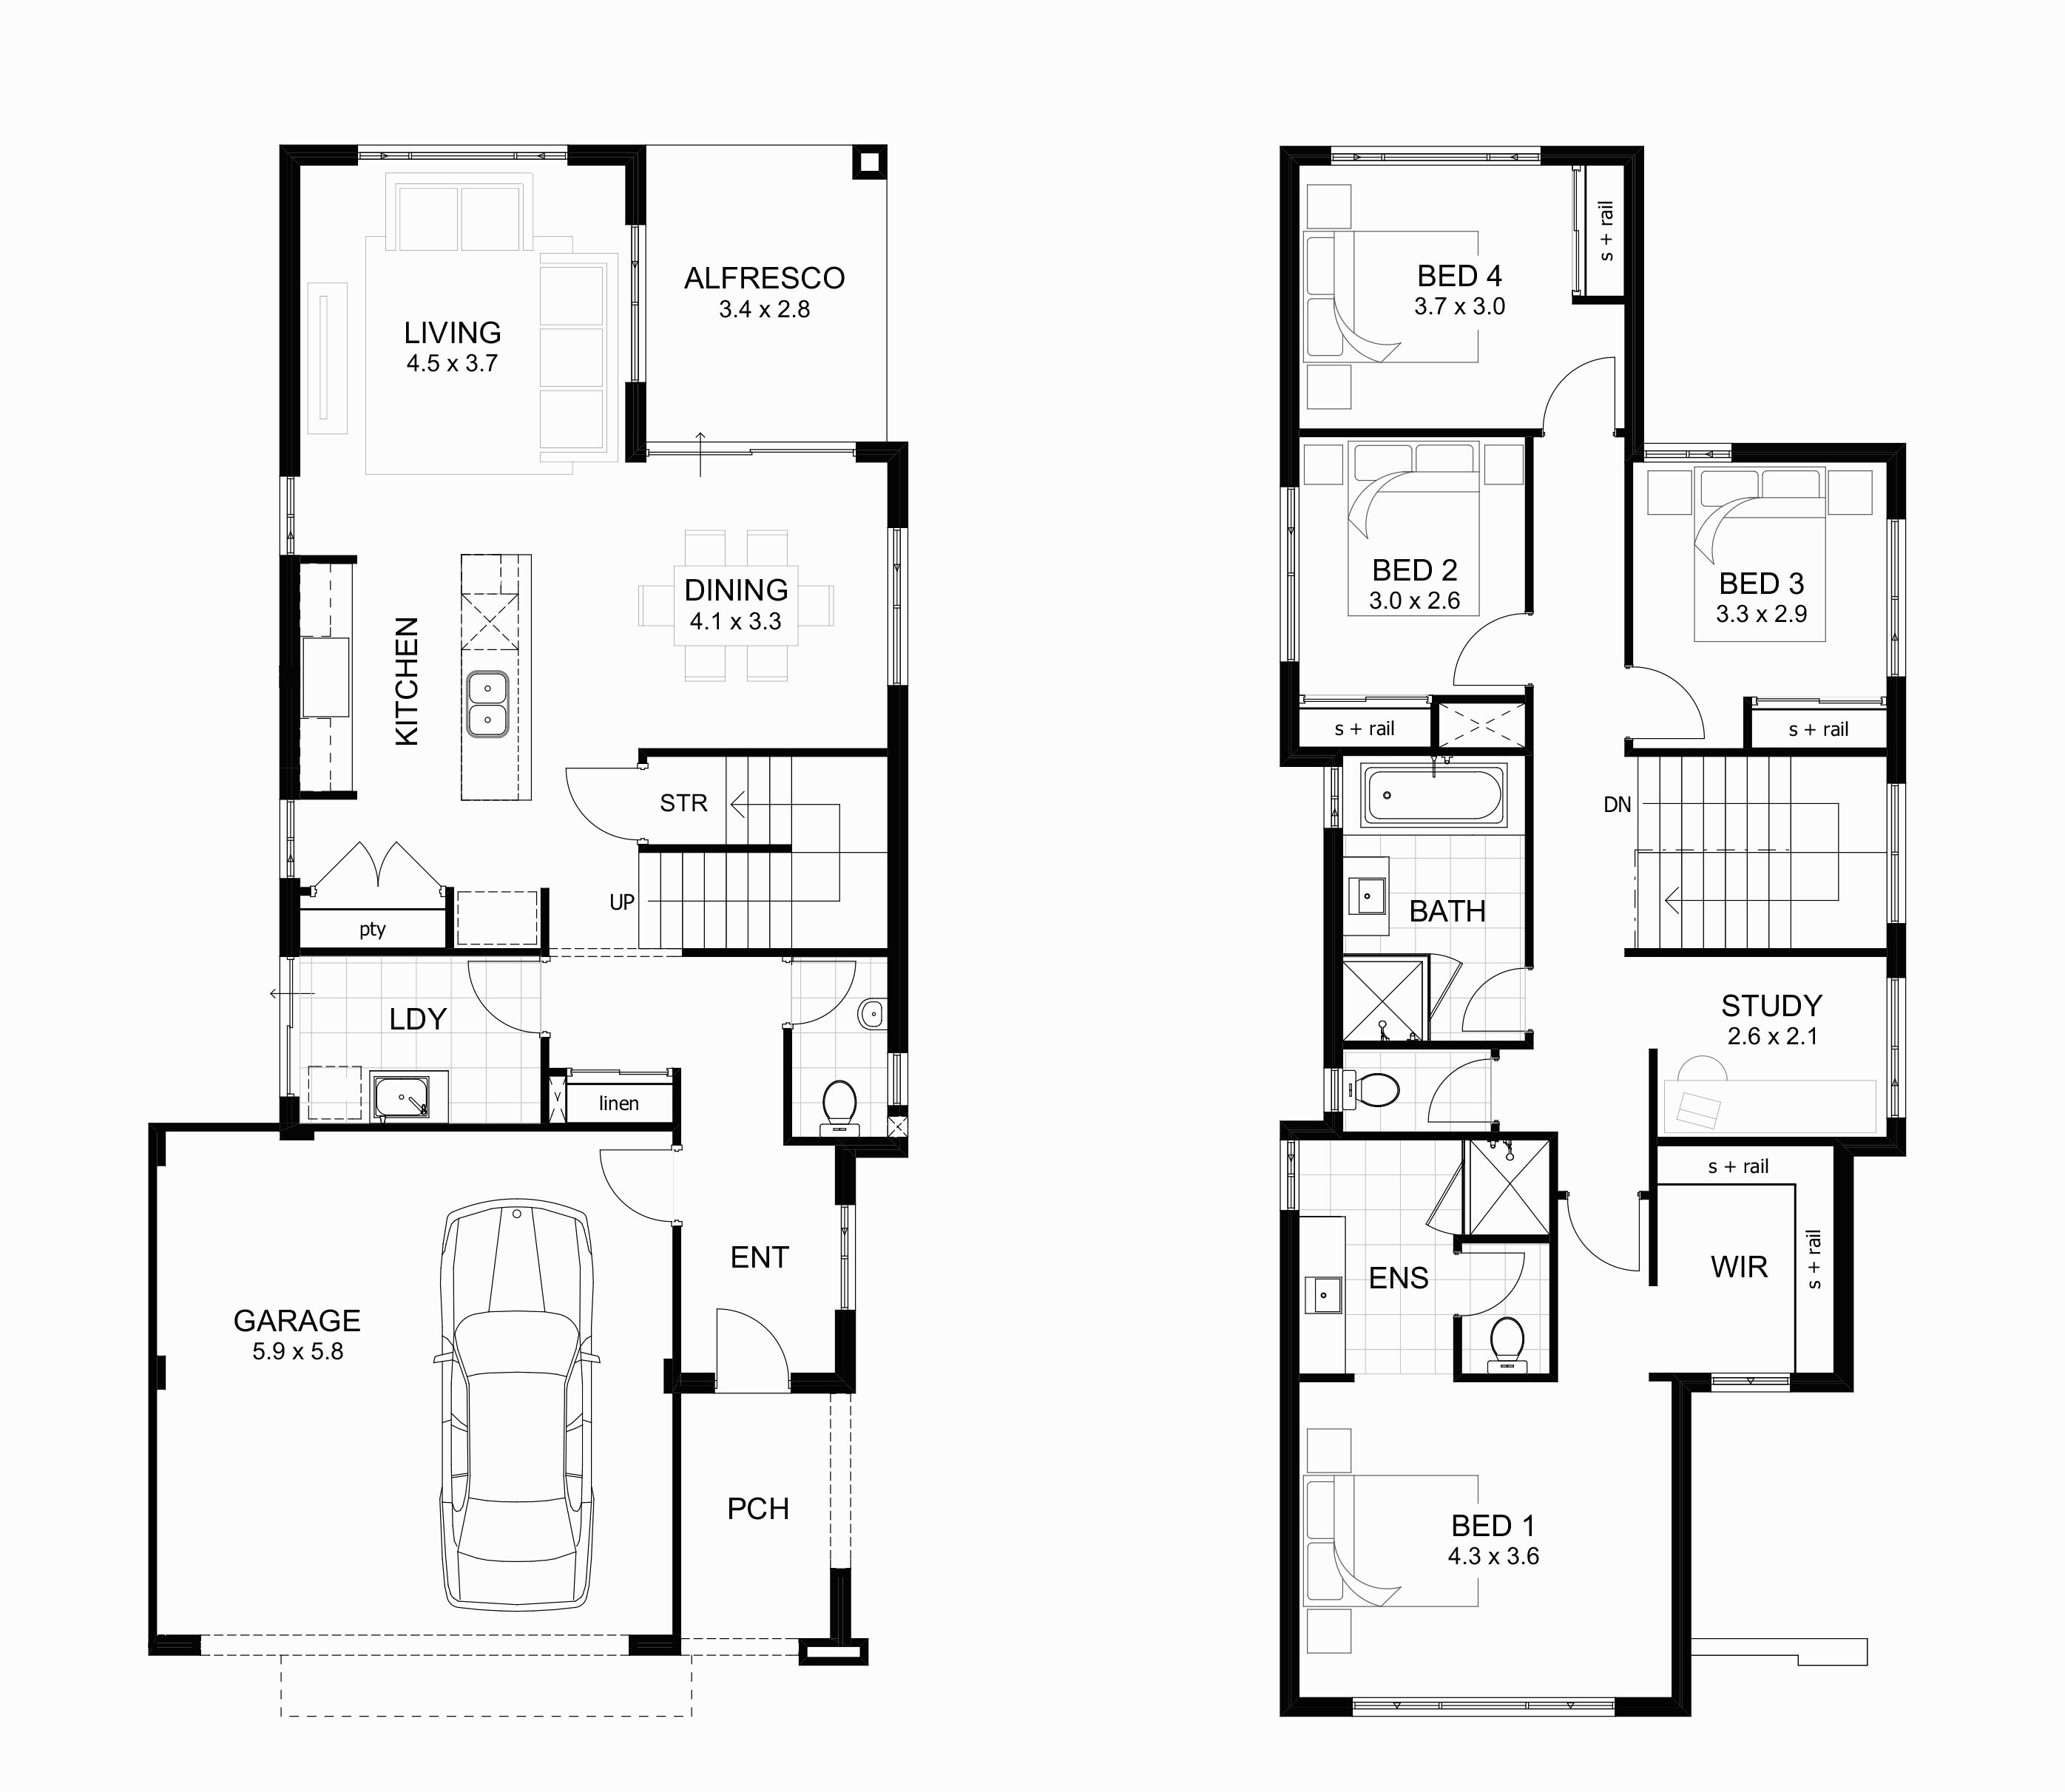 two story house plans with basement floor plans with basement modern two bedroom house plans double storey house plans narrow lot 1413